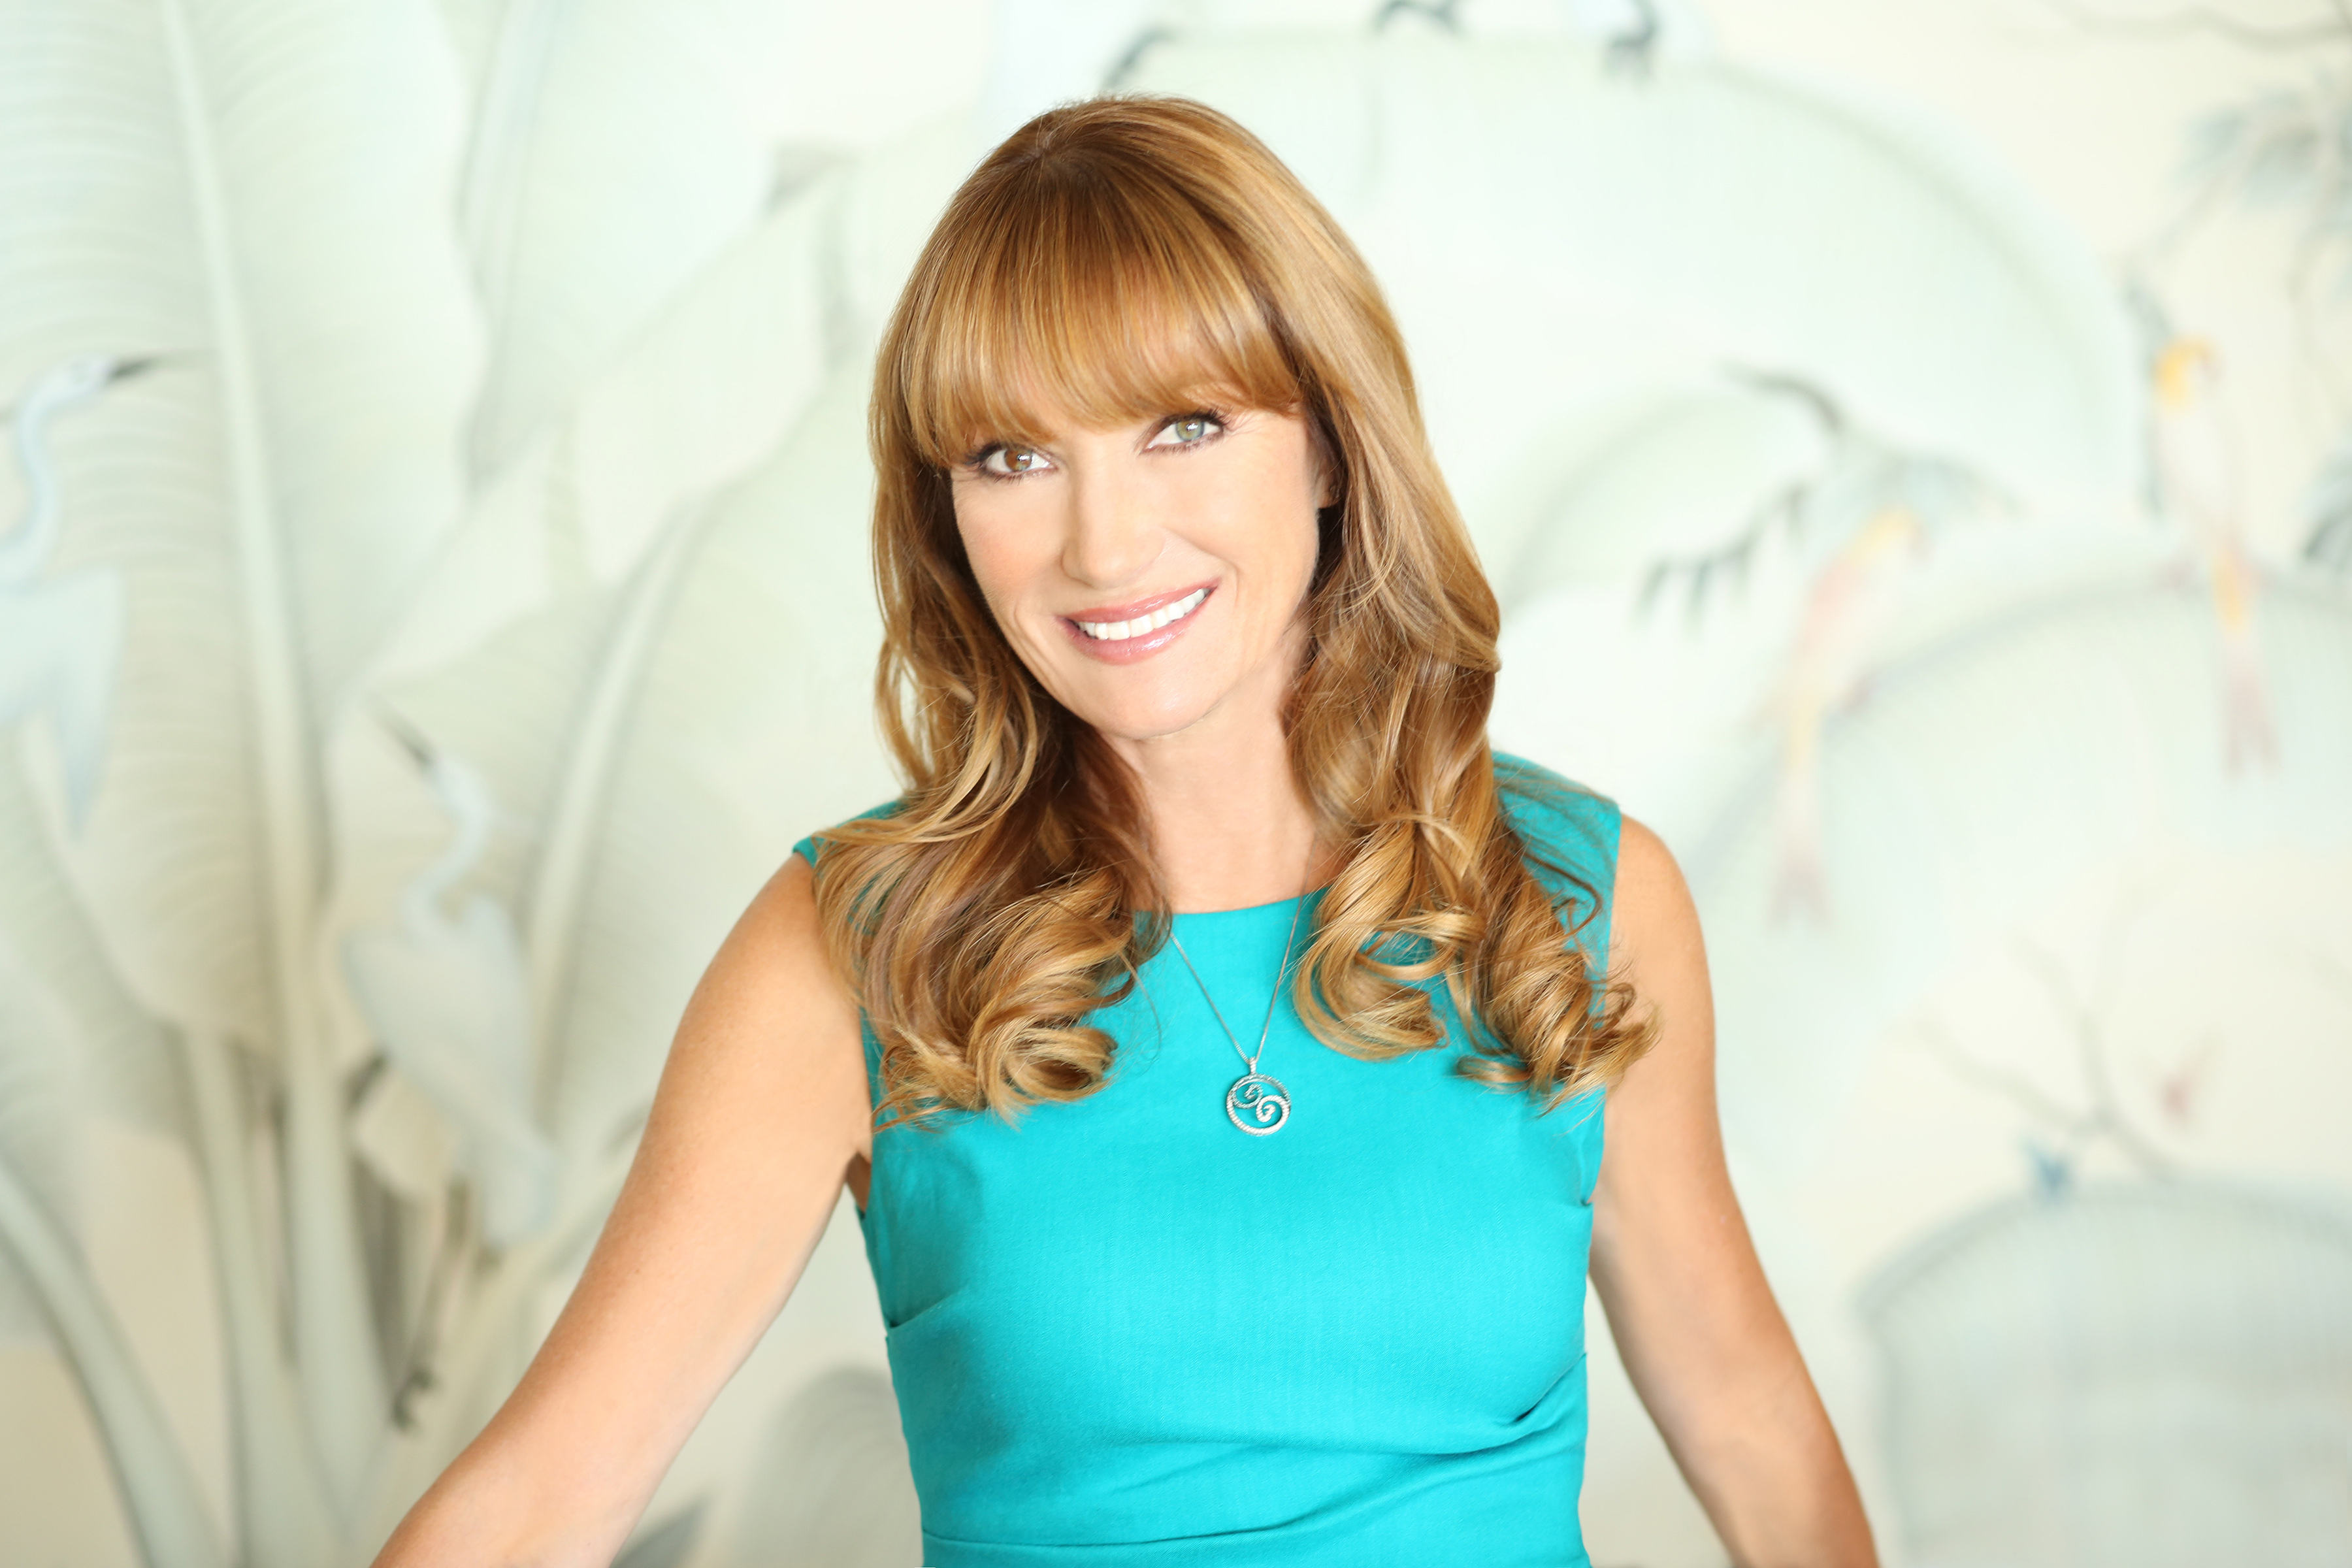 Jane Seymour on Motherhood, Overcoming Challenges, and Keeping an Open Heart